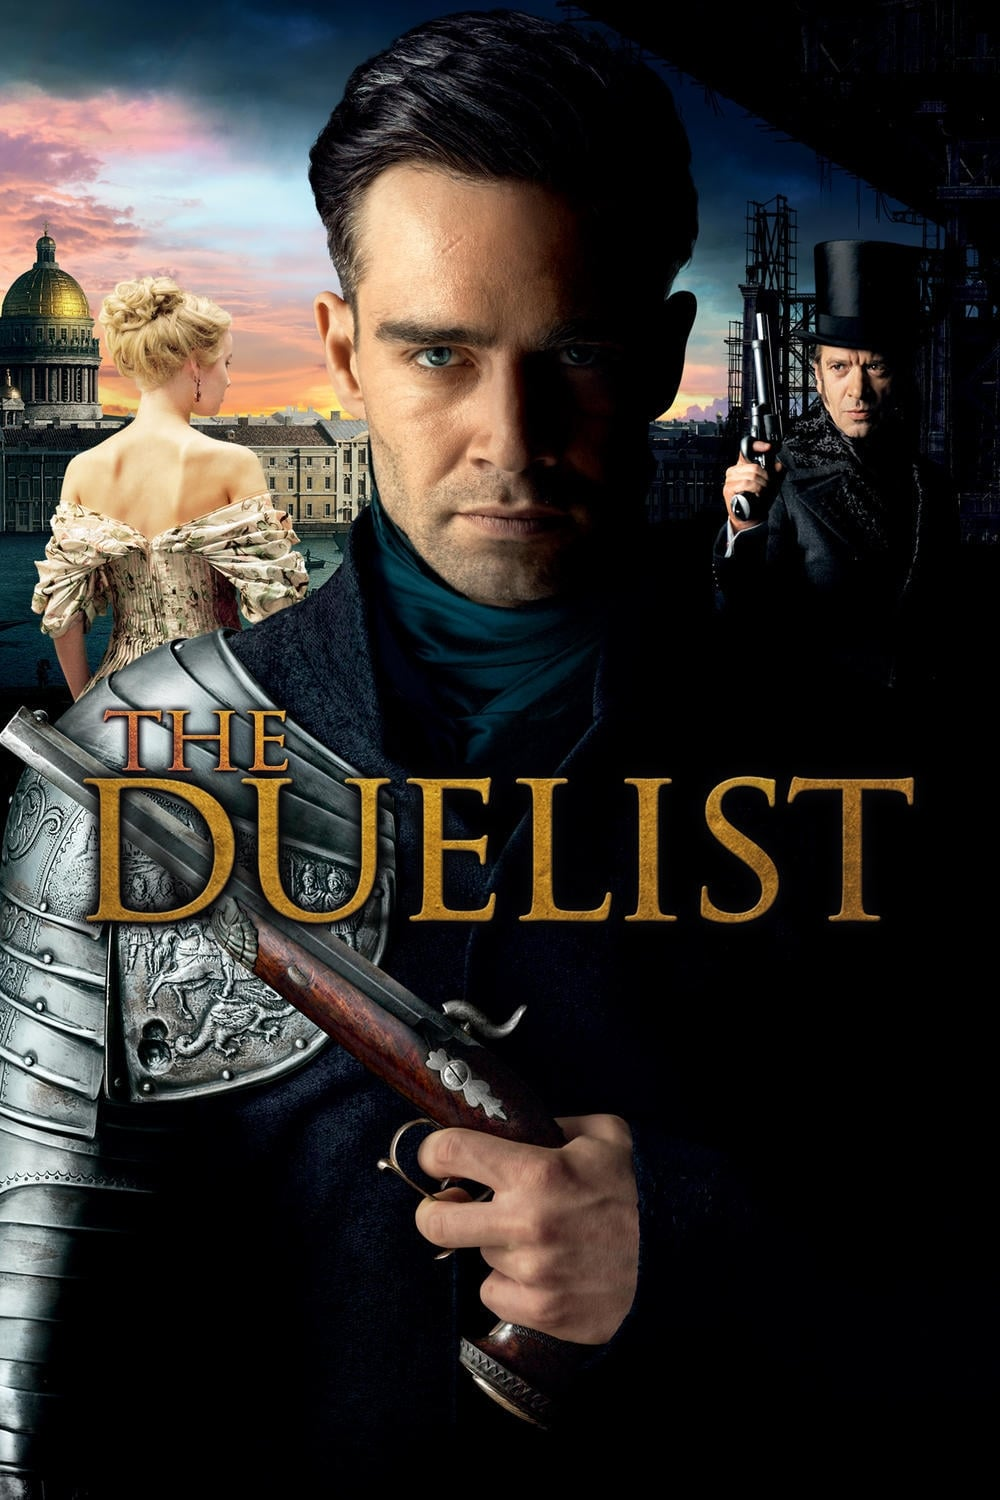 O Duelista Torrent (2018) Dual Áudio Dublado BluRay 720p Download